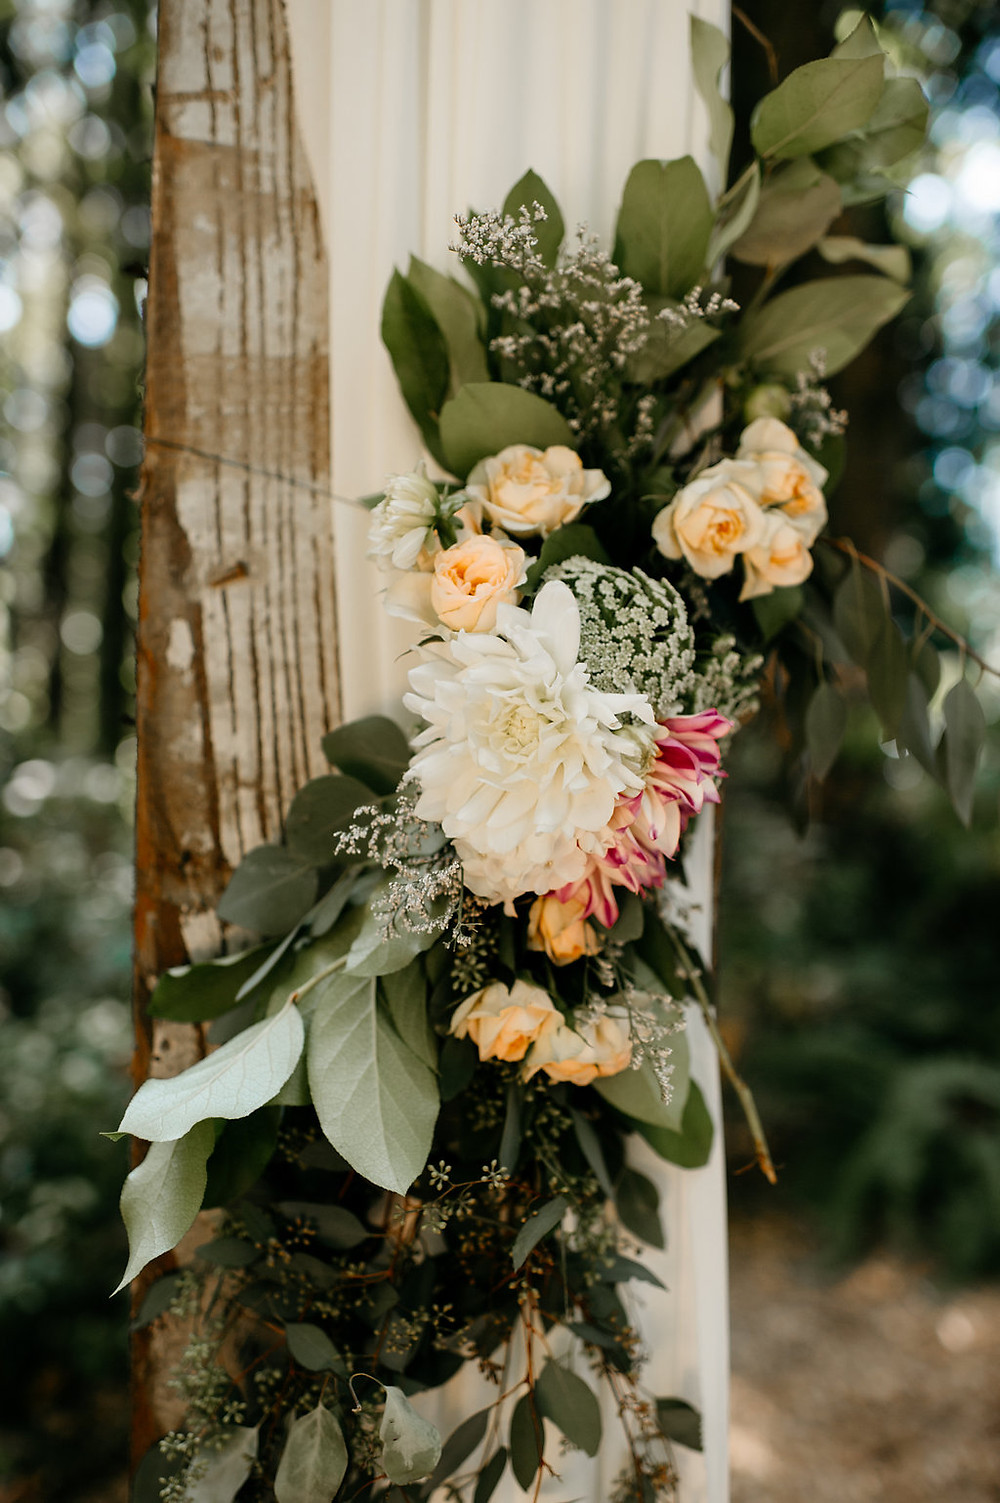 Local Seasonal Floral | Paeonia Pines | Snohomish Washington Florist